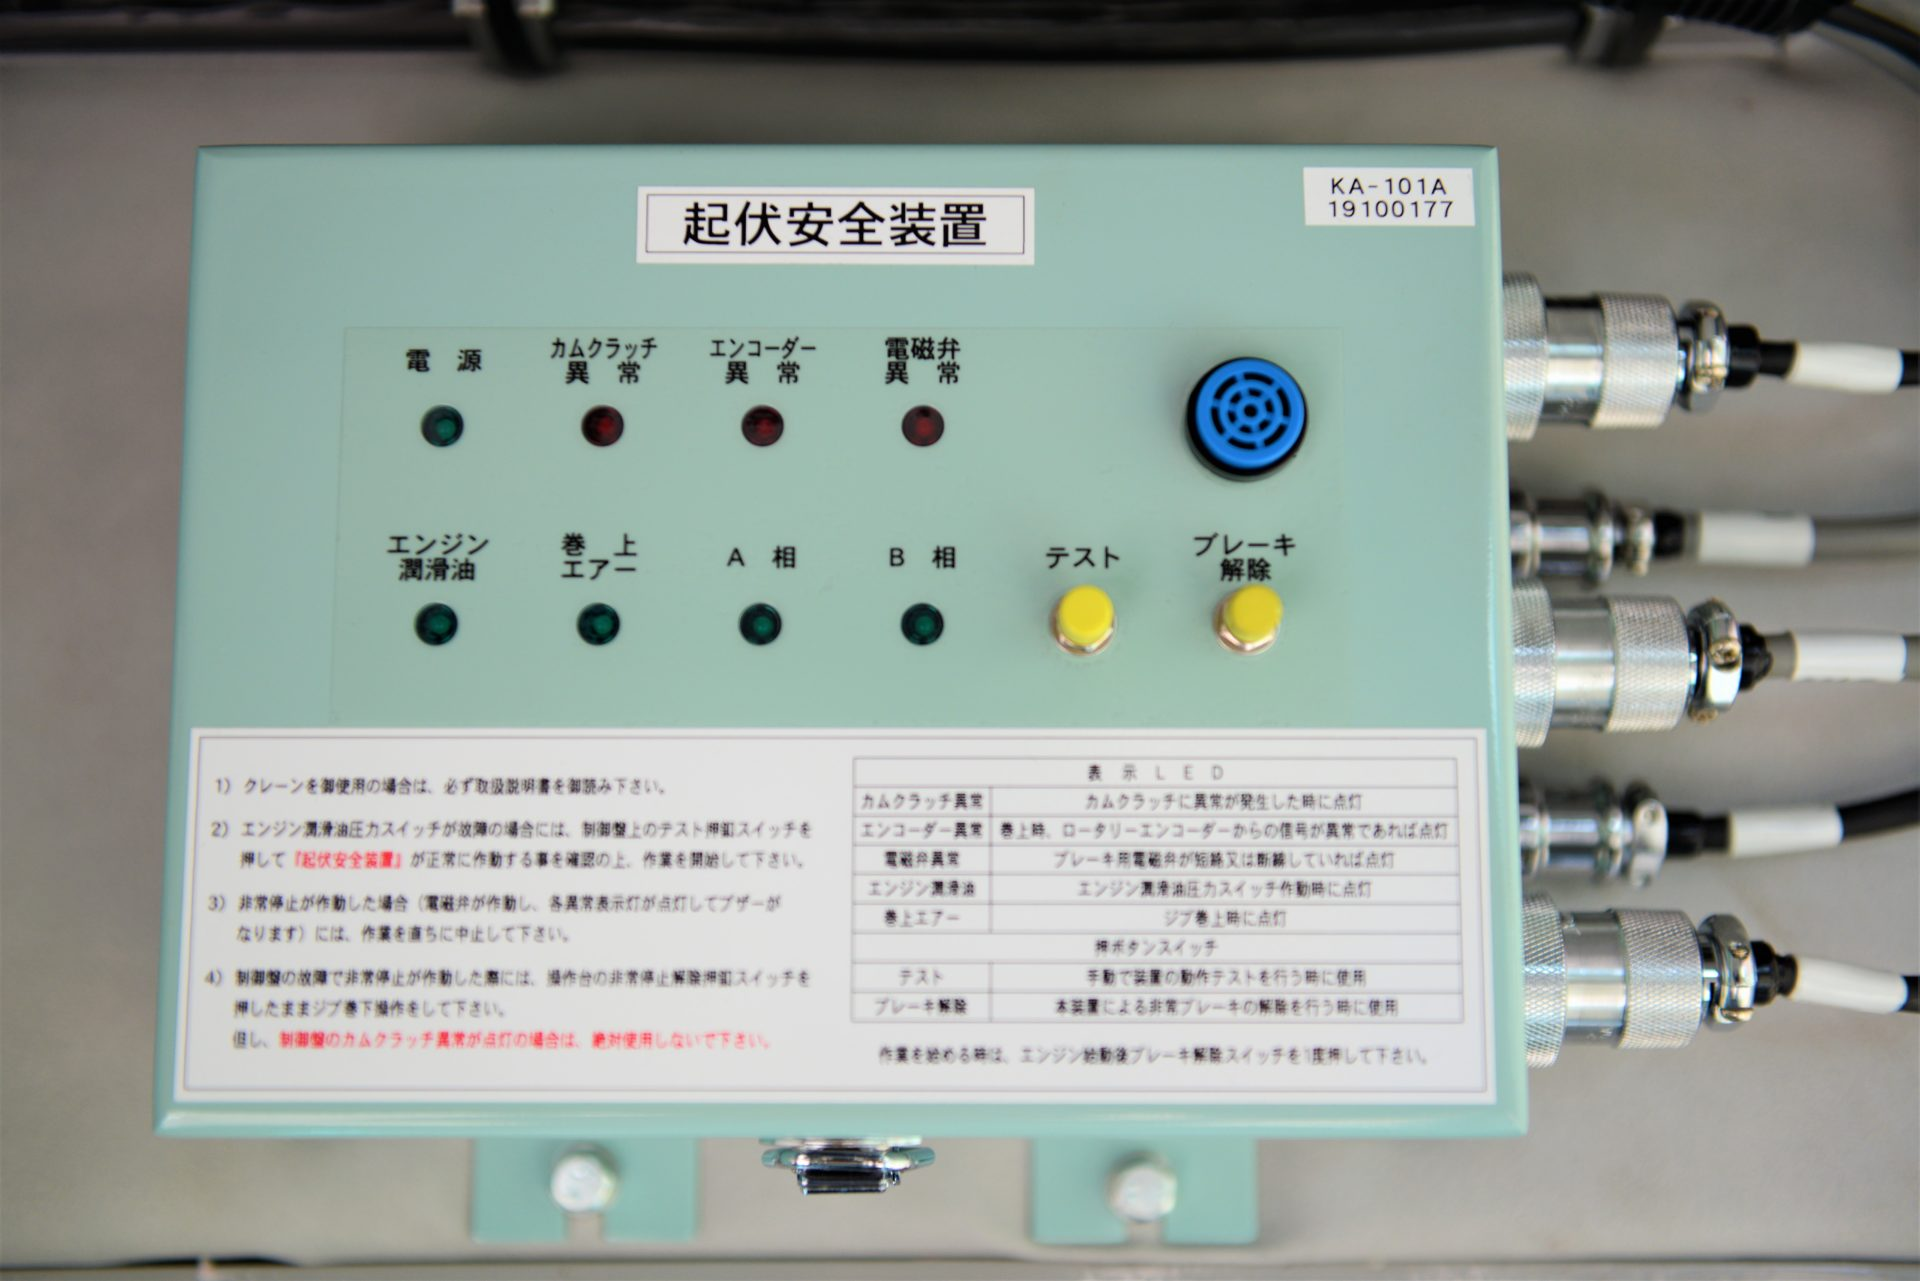 Alarm and Automatic Stop Device to Protect the Working Safety